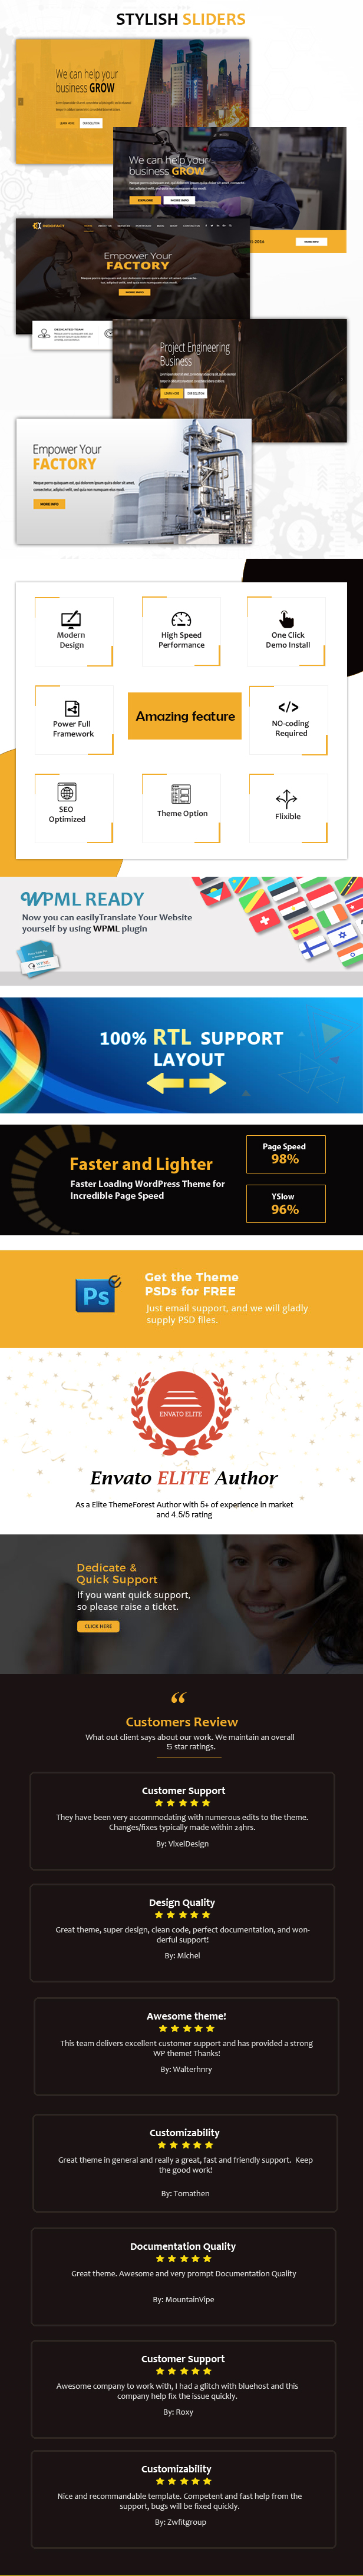 Indofact - Industry and factory WordPress Theme - 3